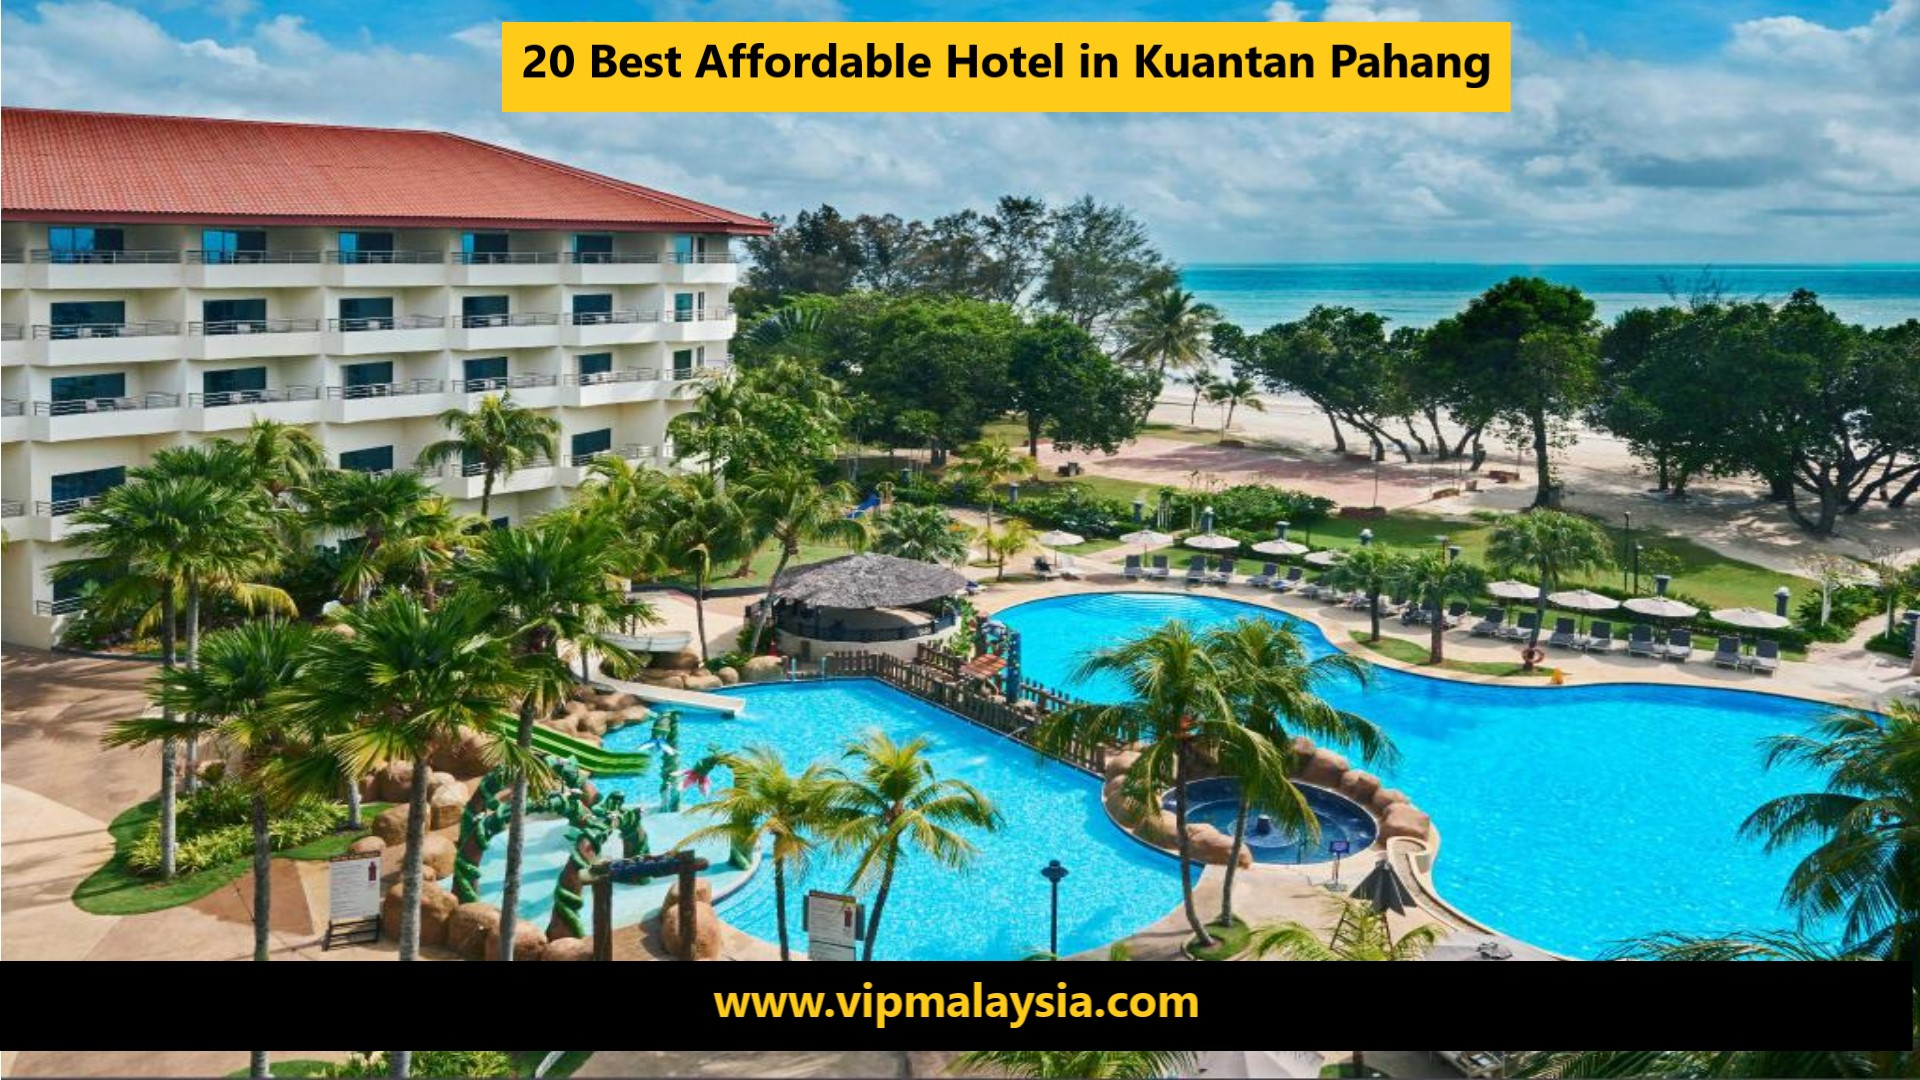 Best Affordable Hotel in Kuantan Pahang Malaysia